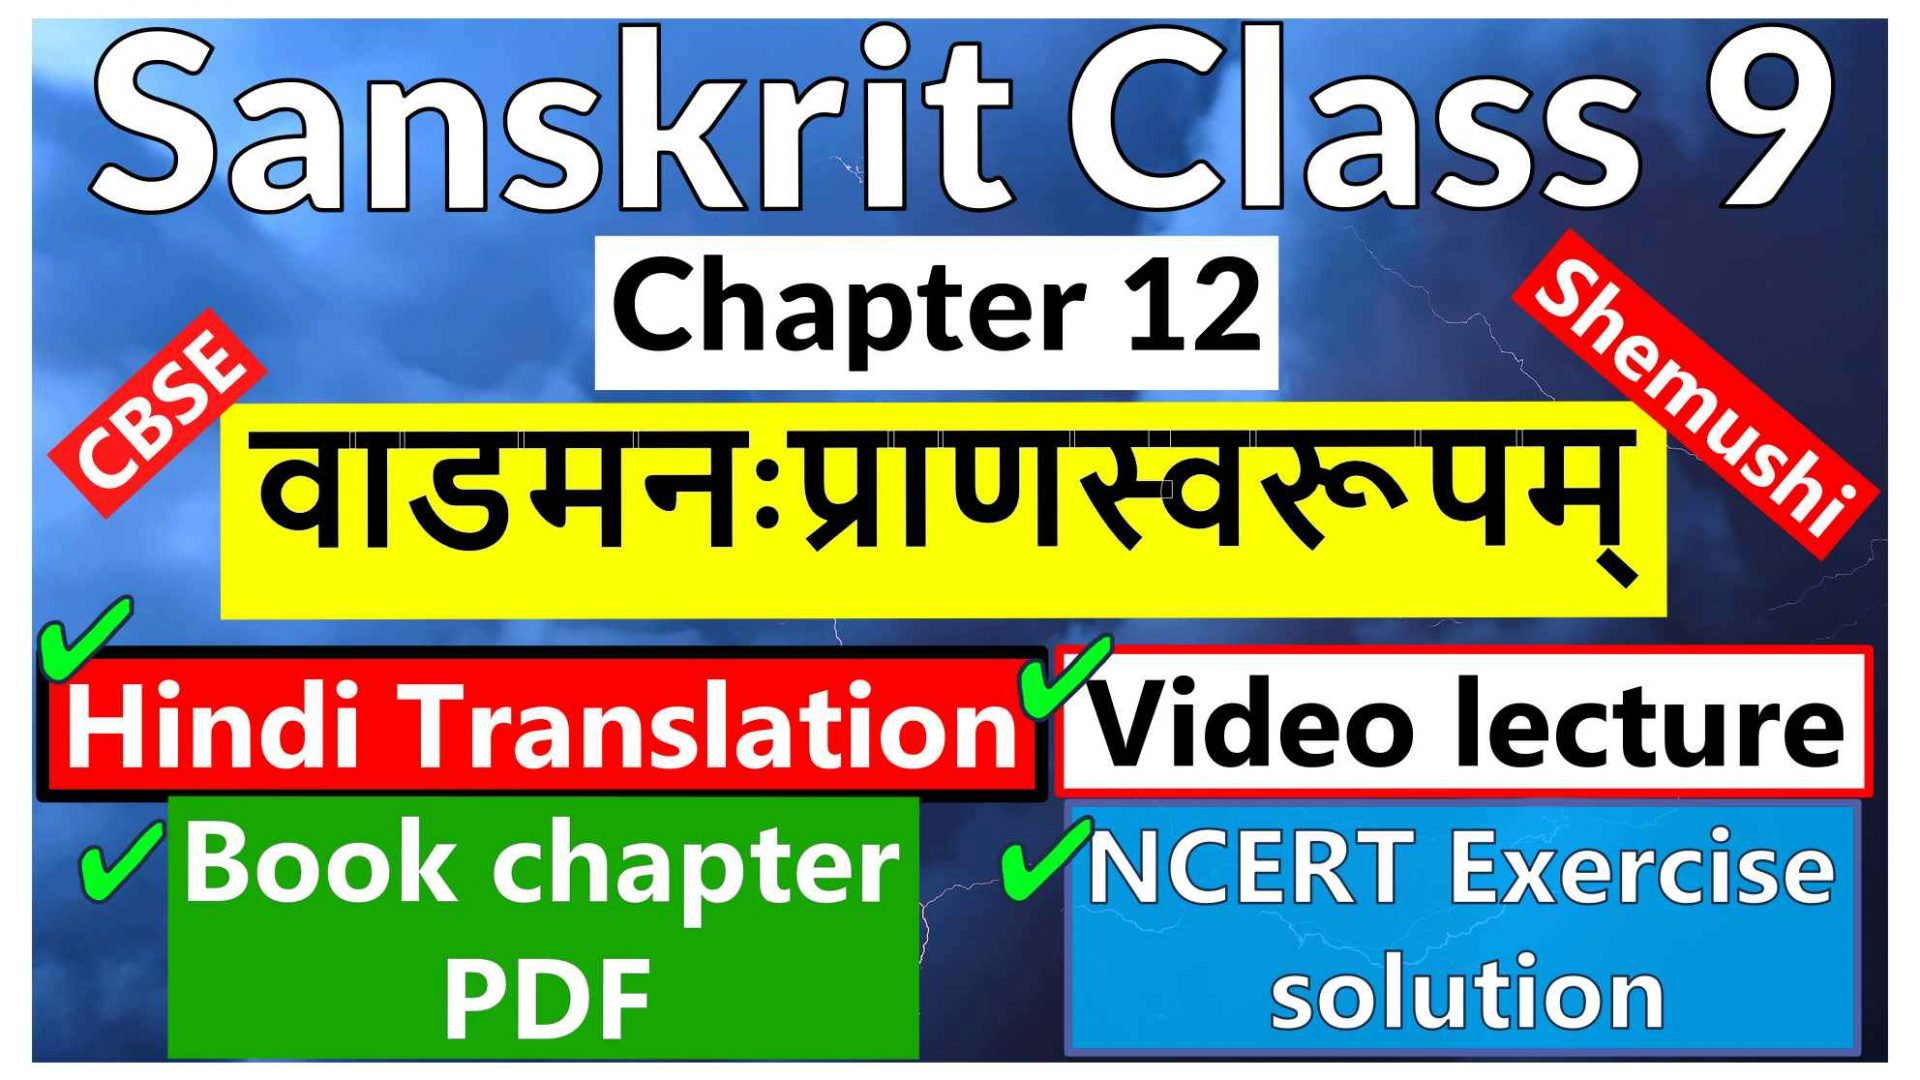 Sanskrit Class 9-Chapter 12 - वाडमनःप्राणस्वरूपम् -Hindi Translation, Video lecture, NCERT Exercise solution (Question-Answer), Book chapter PDF